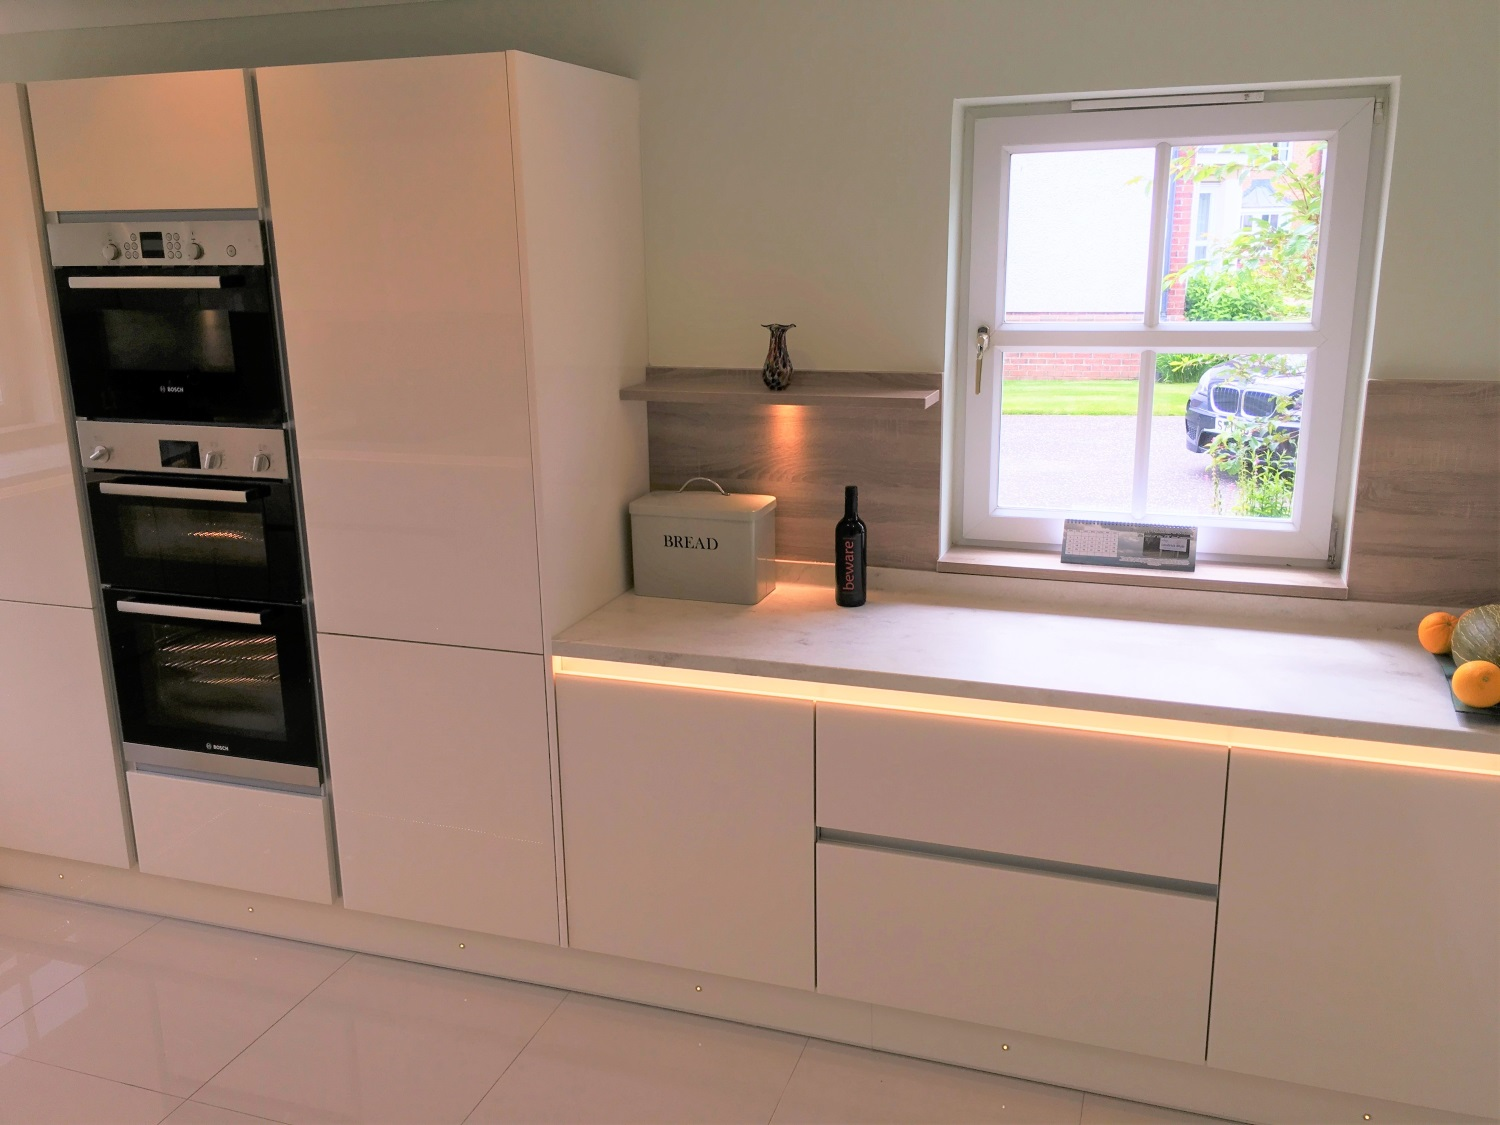 Oven Housing Unit with Bespoke wall shelve